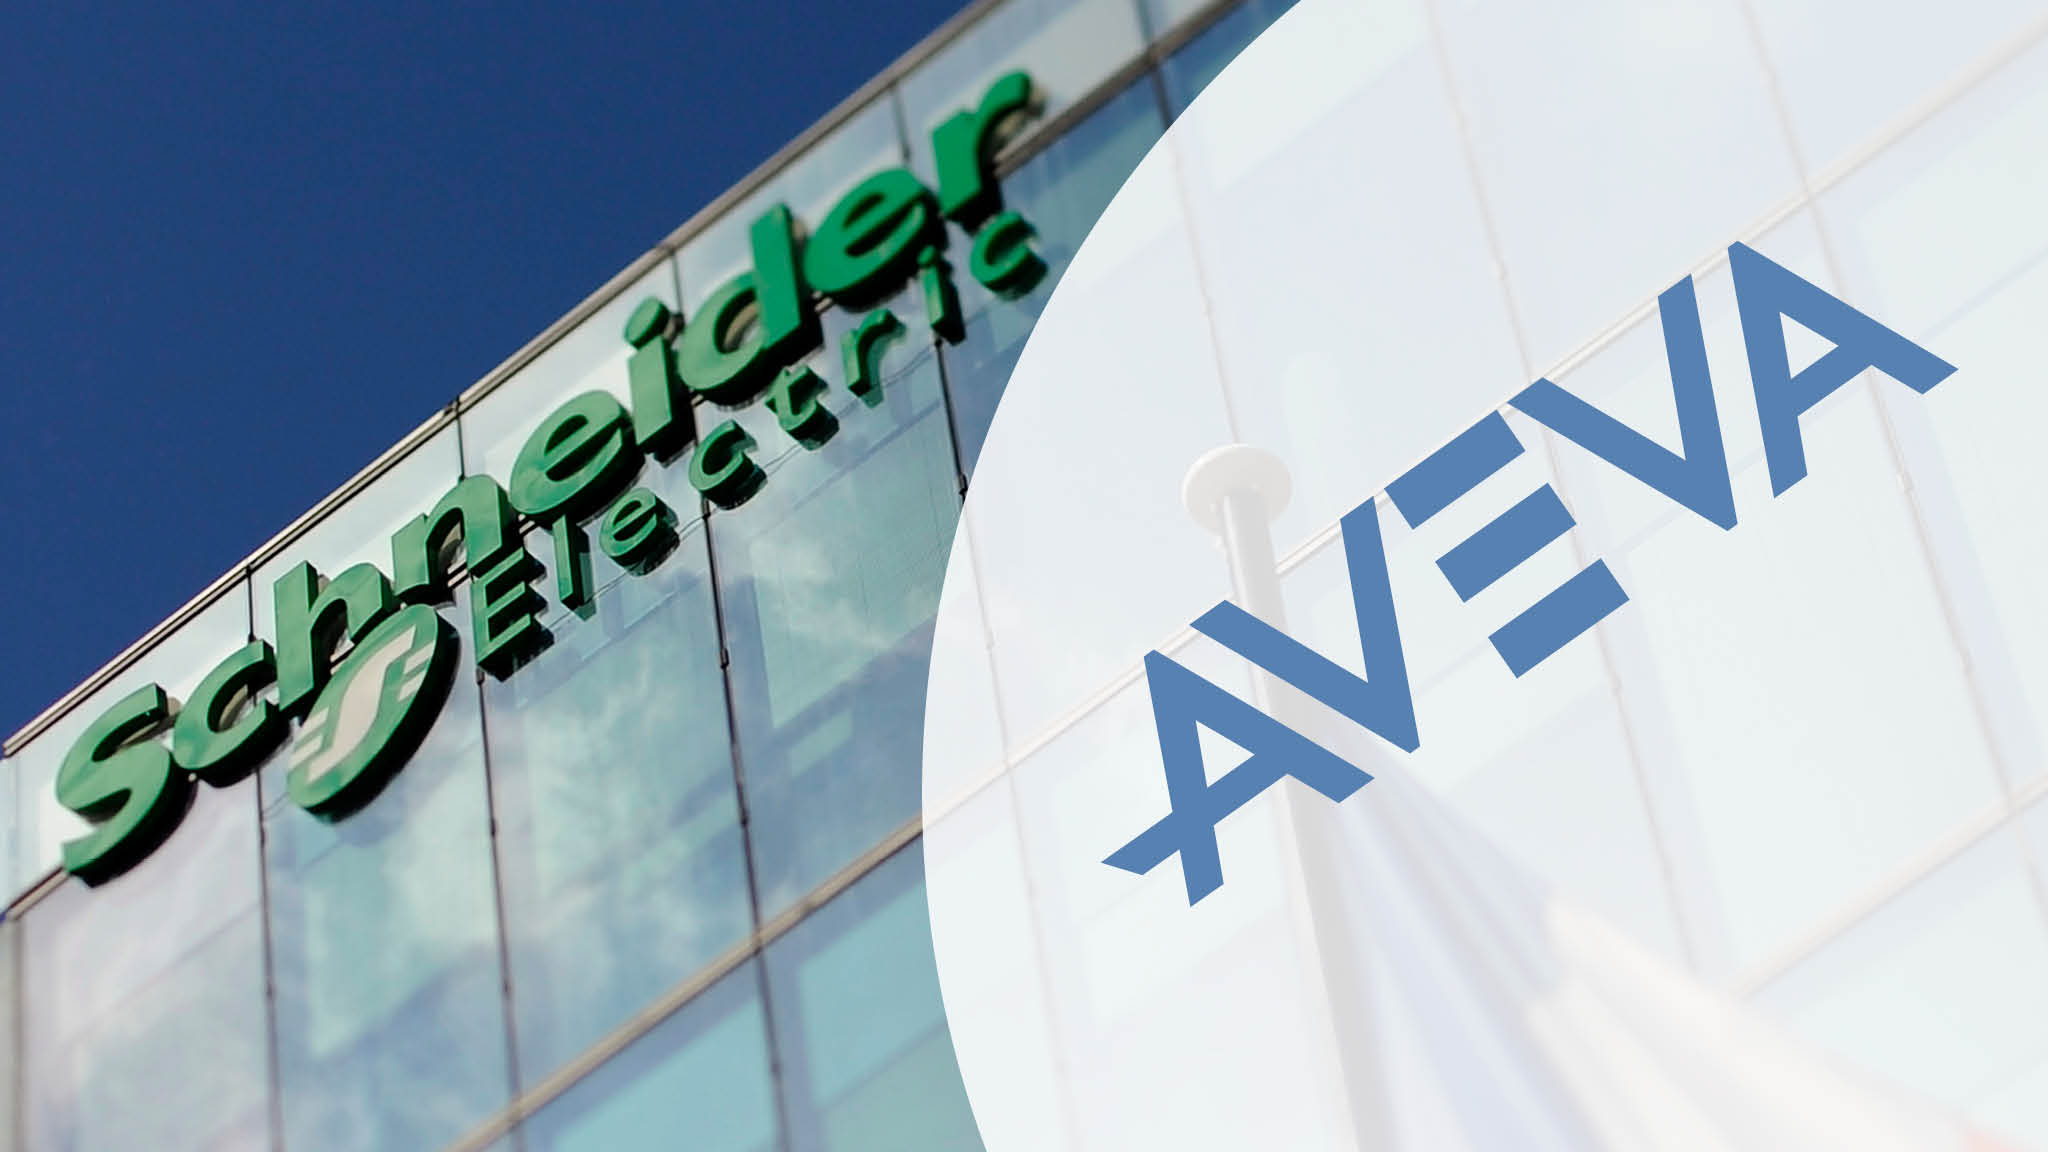 Aveva interim dividend up 10.7% to 15.5 pence per share